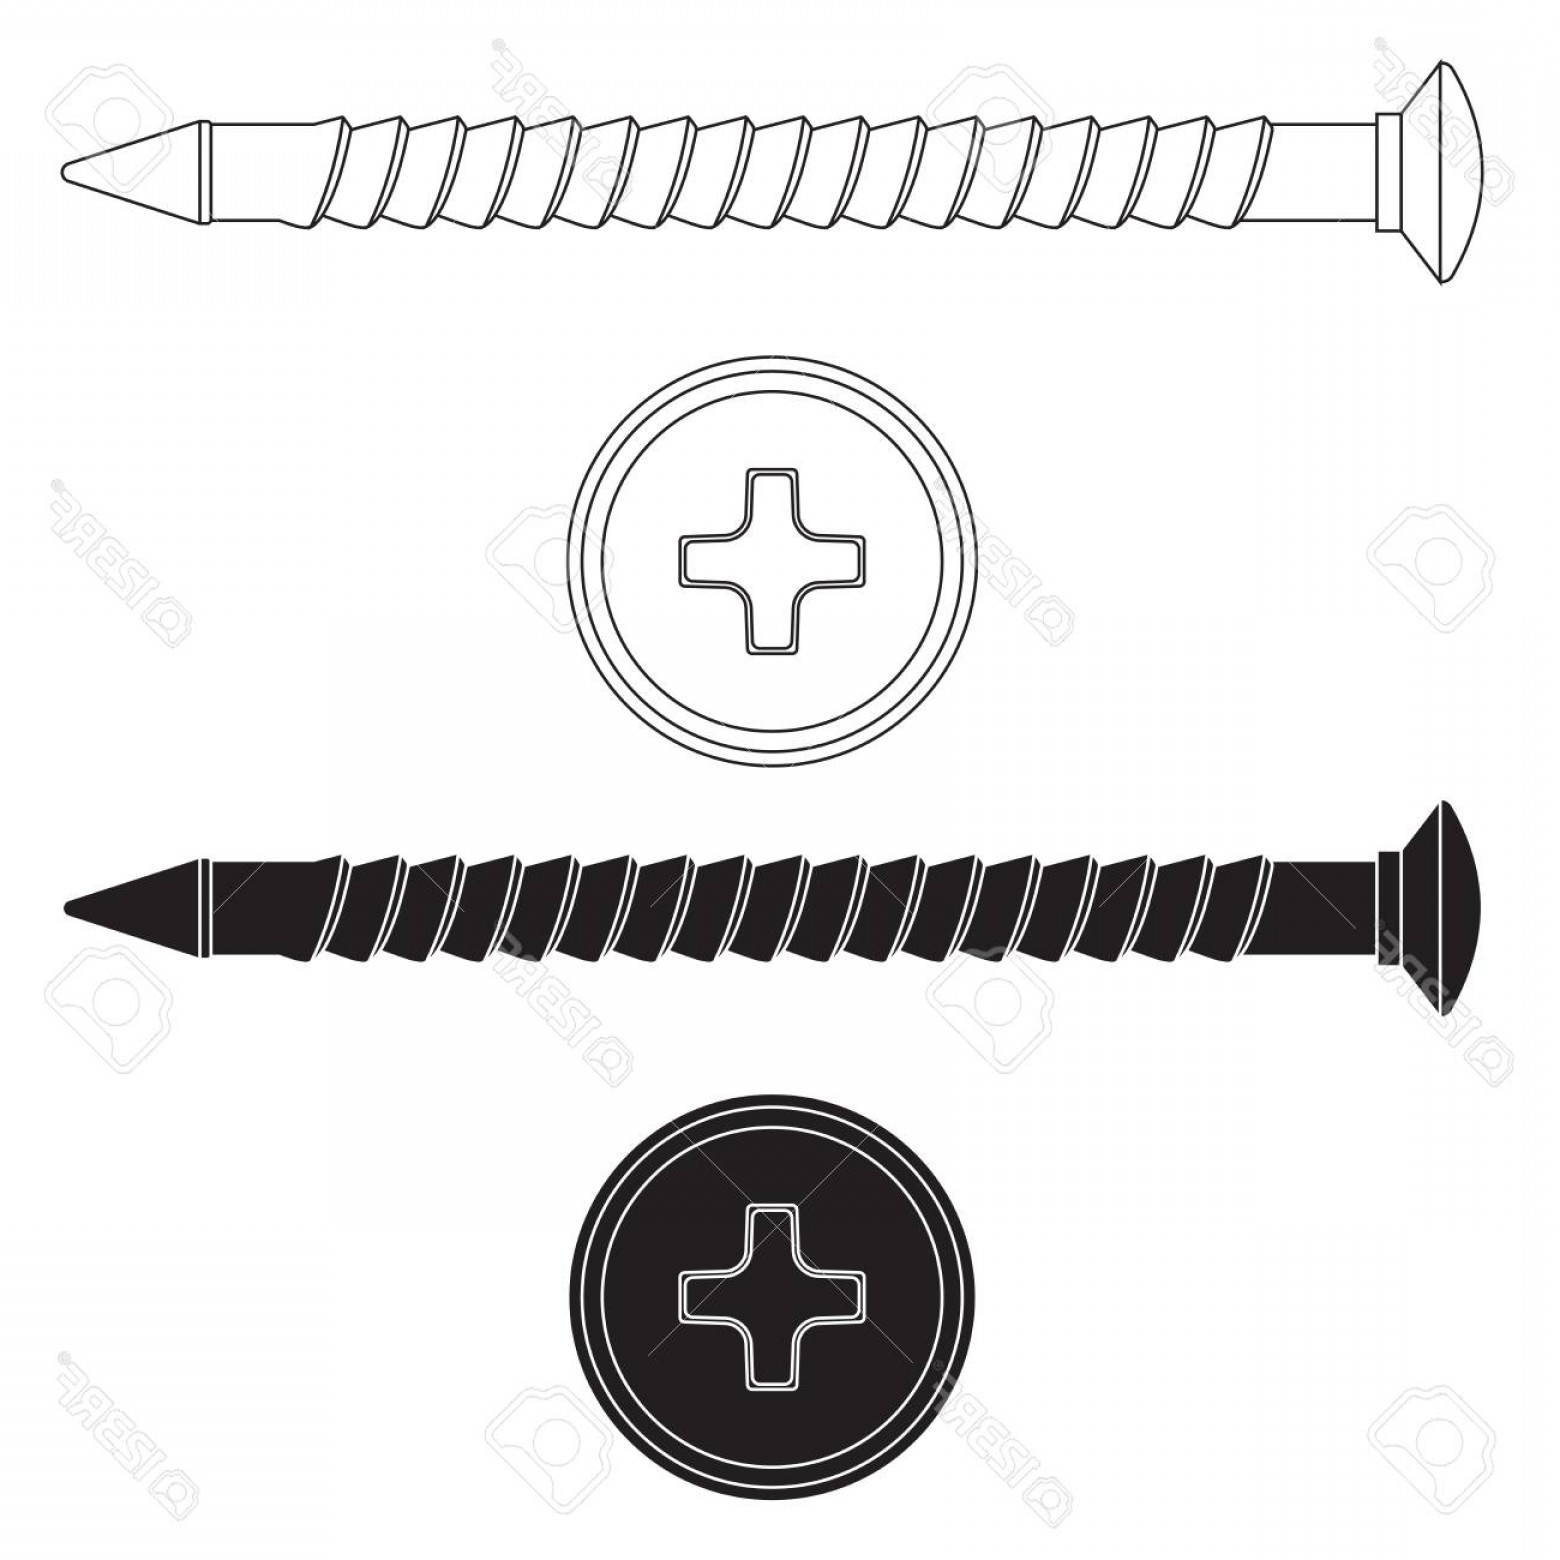 Screw Vector Black: Photostock Vector Wood Screw Black And White Outline Drawing